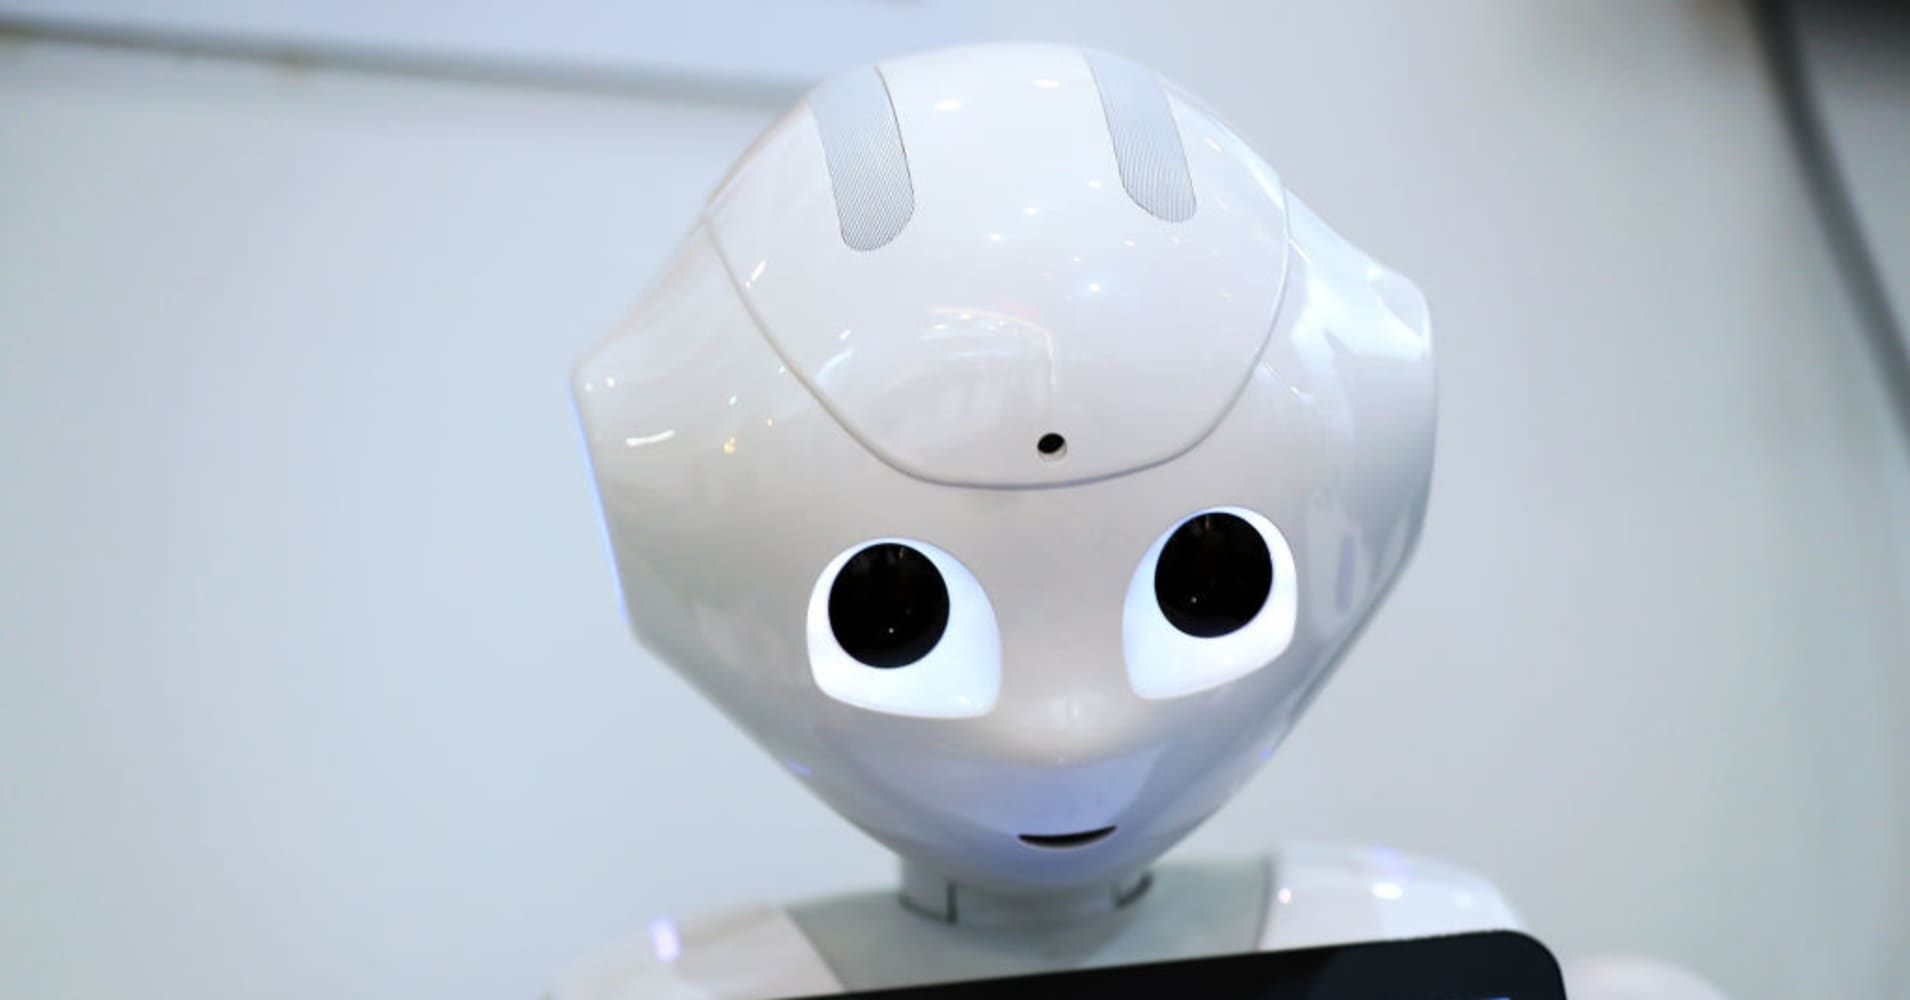 A.I. could spur global growth as much as the steam engine did, study shows